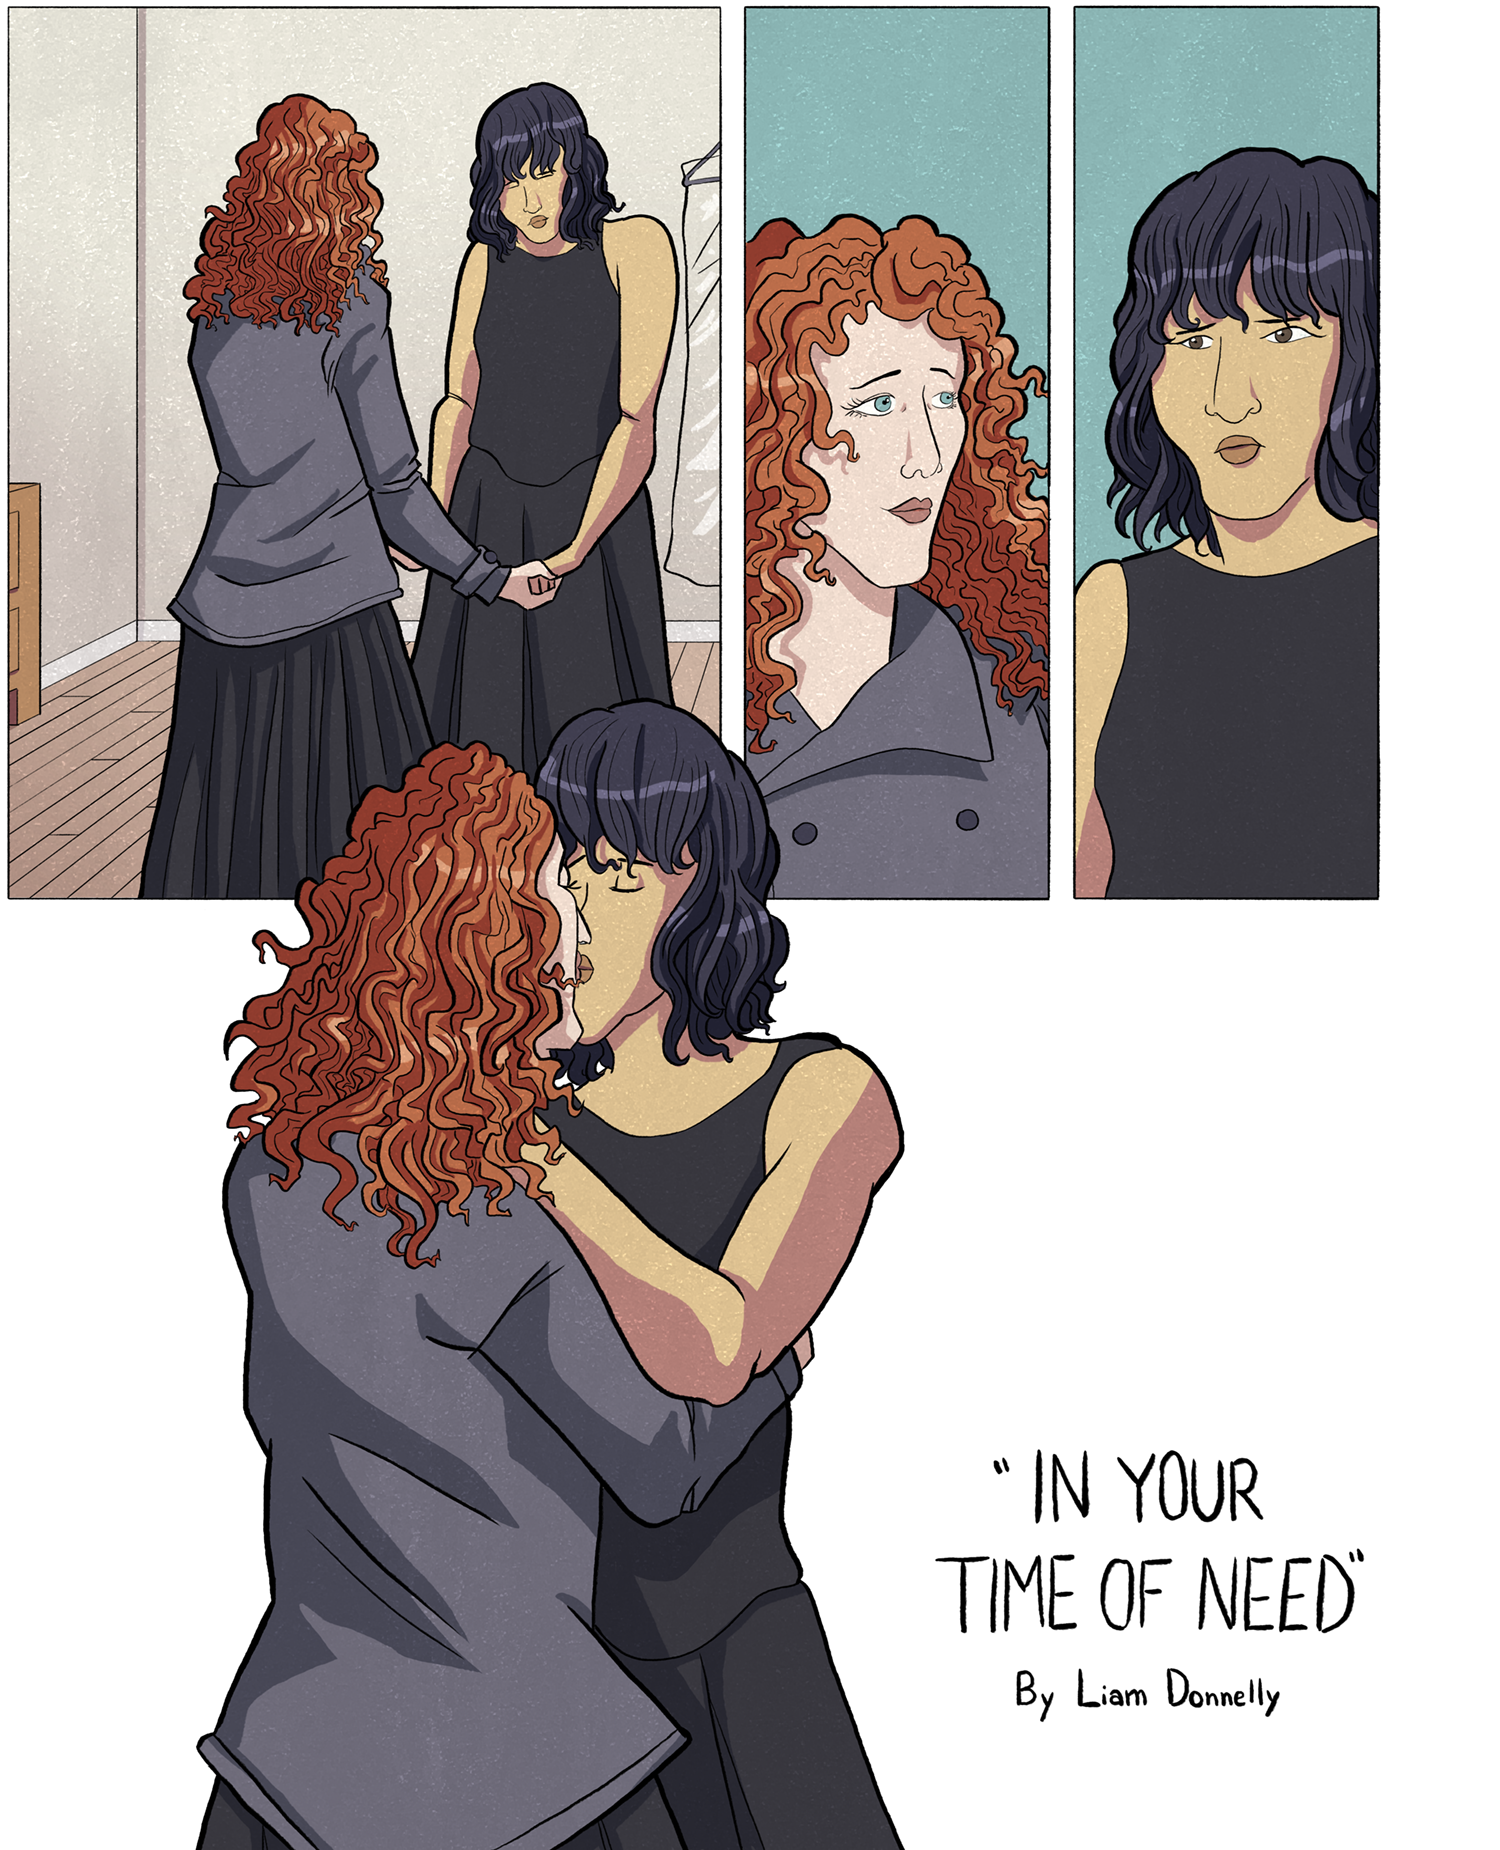 LDonnelly - Page 05R.png